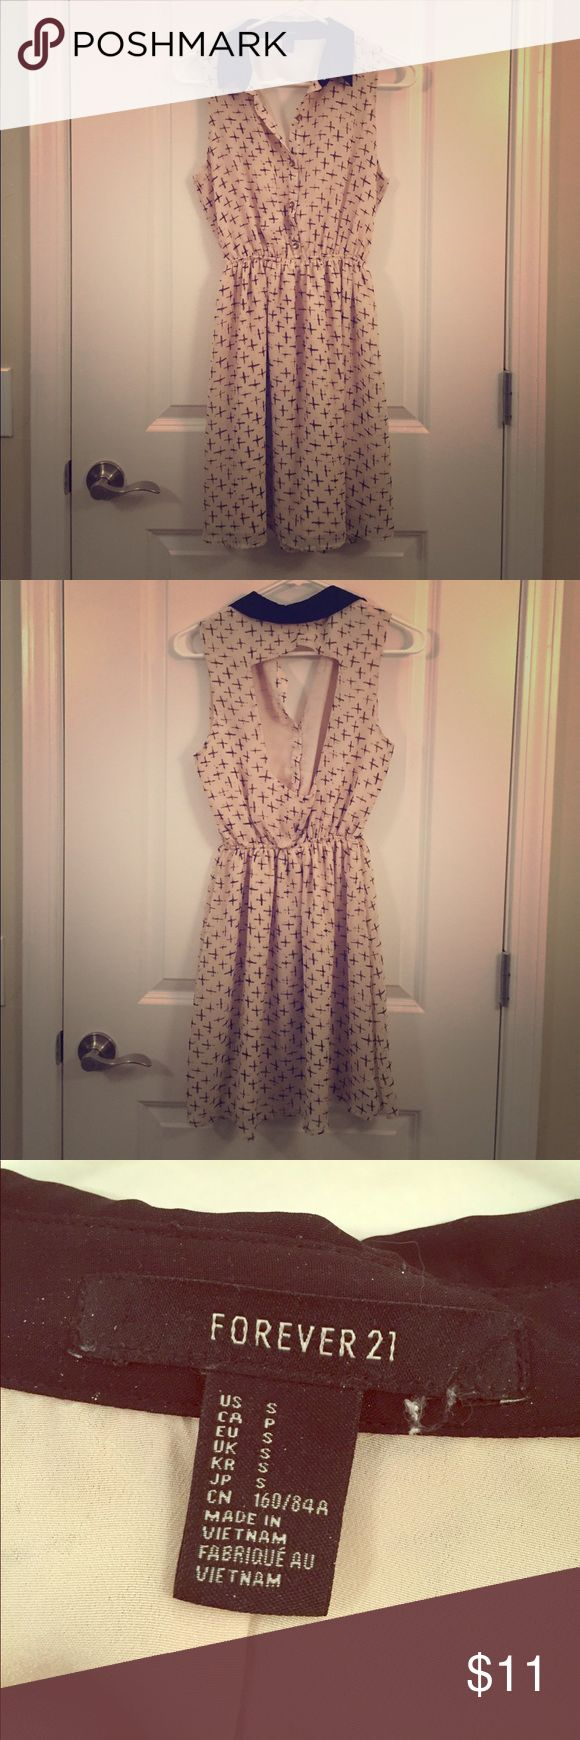 """Forever 21 dress. Nude color w/ black """"x""""s and black collar. 100% polyester. Buttons down in front chest, large cut out in back, waist band stretches. Great dress for going out for dinner! Forever 21 Dresses"""